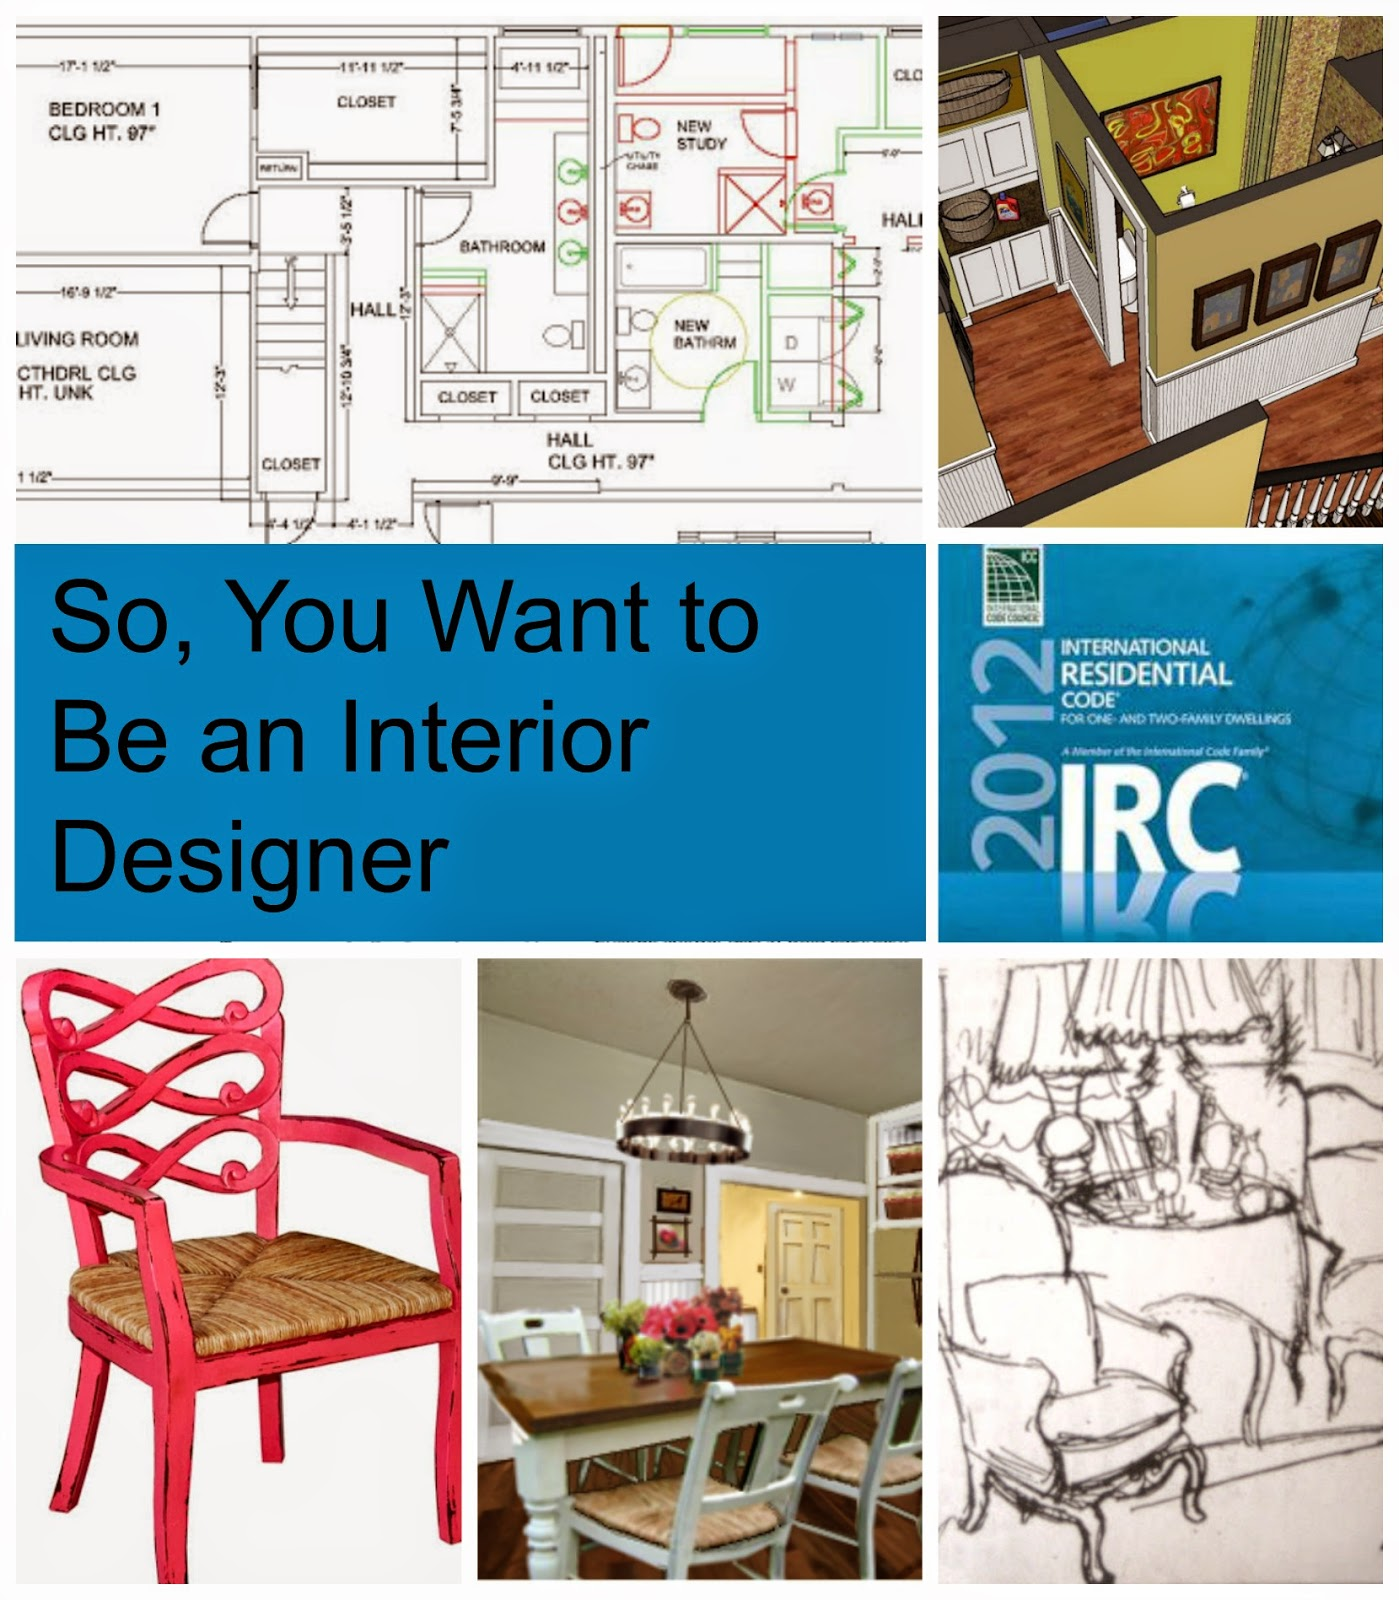 House Revivals So You Want To Be An Interior Designer!